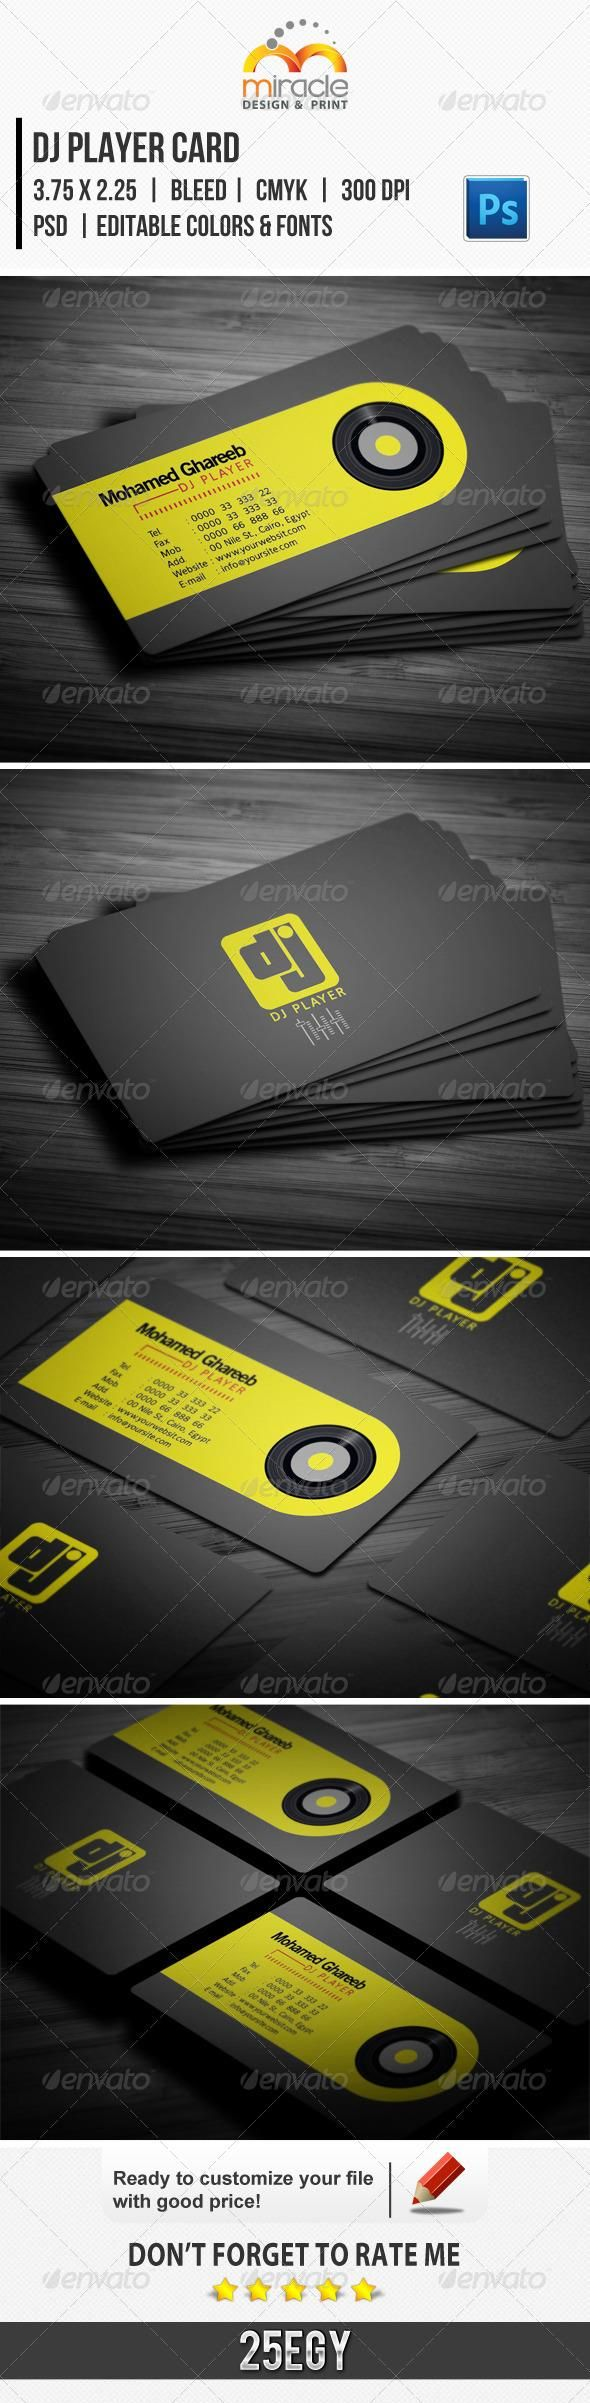 1661 best business card design images on pinterest cards file c dj player card magicingreecefo Image collections